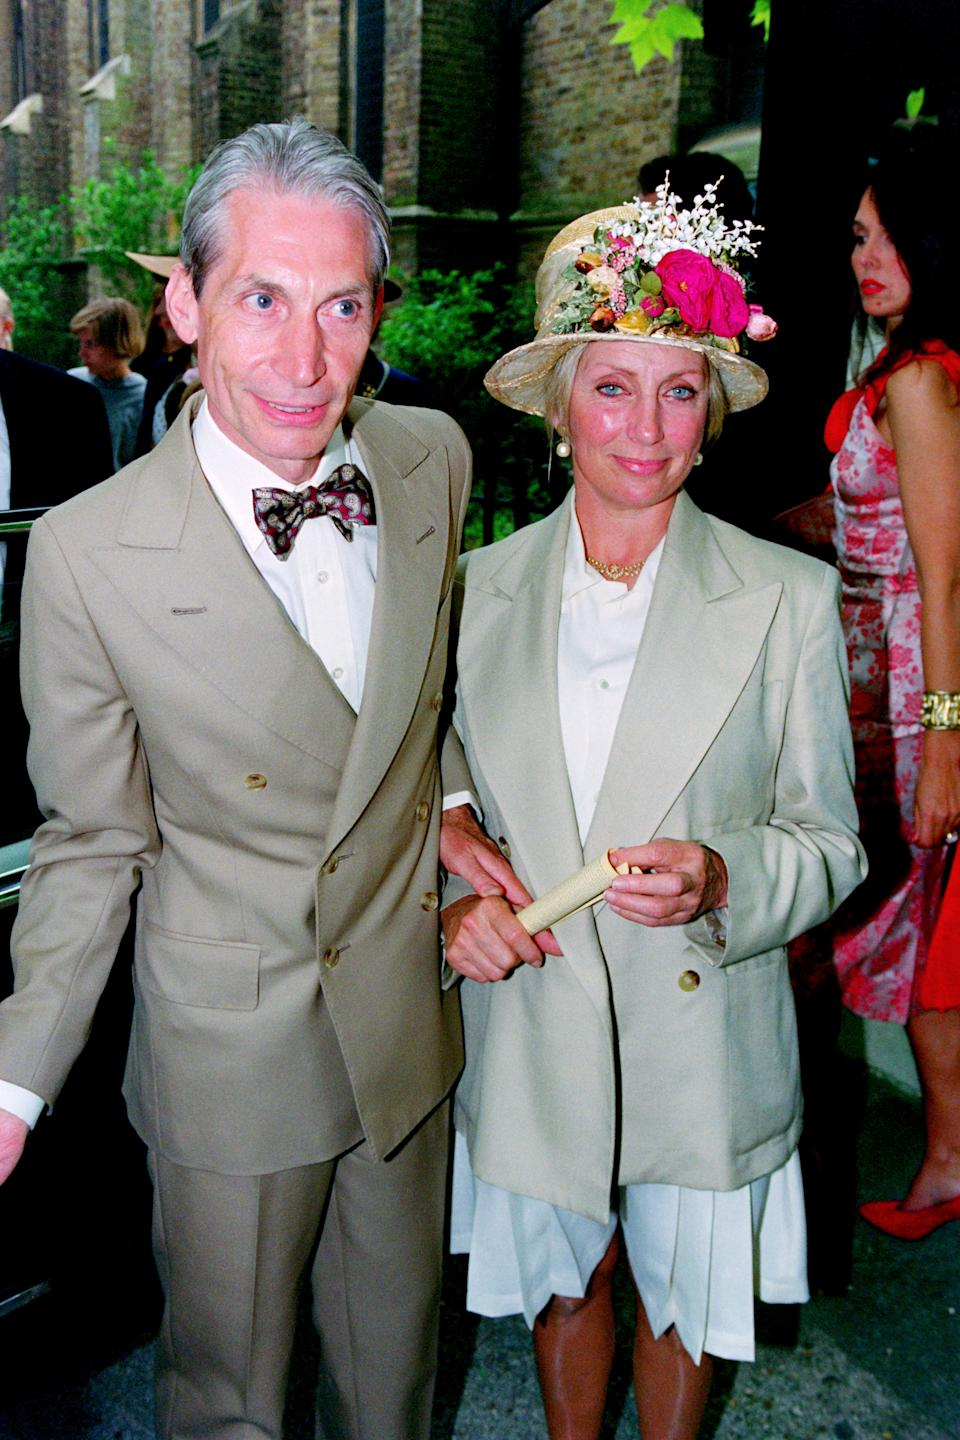 Drummer of The Rolling Stones, Charlie Watts and his wife Shirley Ann Shepherd, attend Georgia May Jagger's christening at Saint Andrew's church, Richmond in 1992. (Photo by Dave Hogan/Hulton Archive/Getty Images)